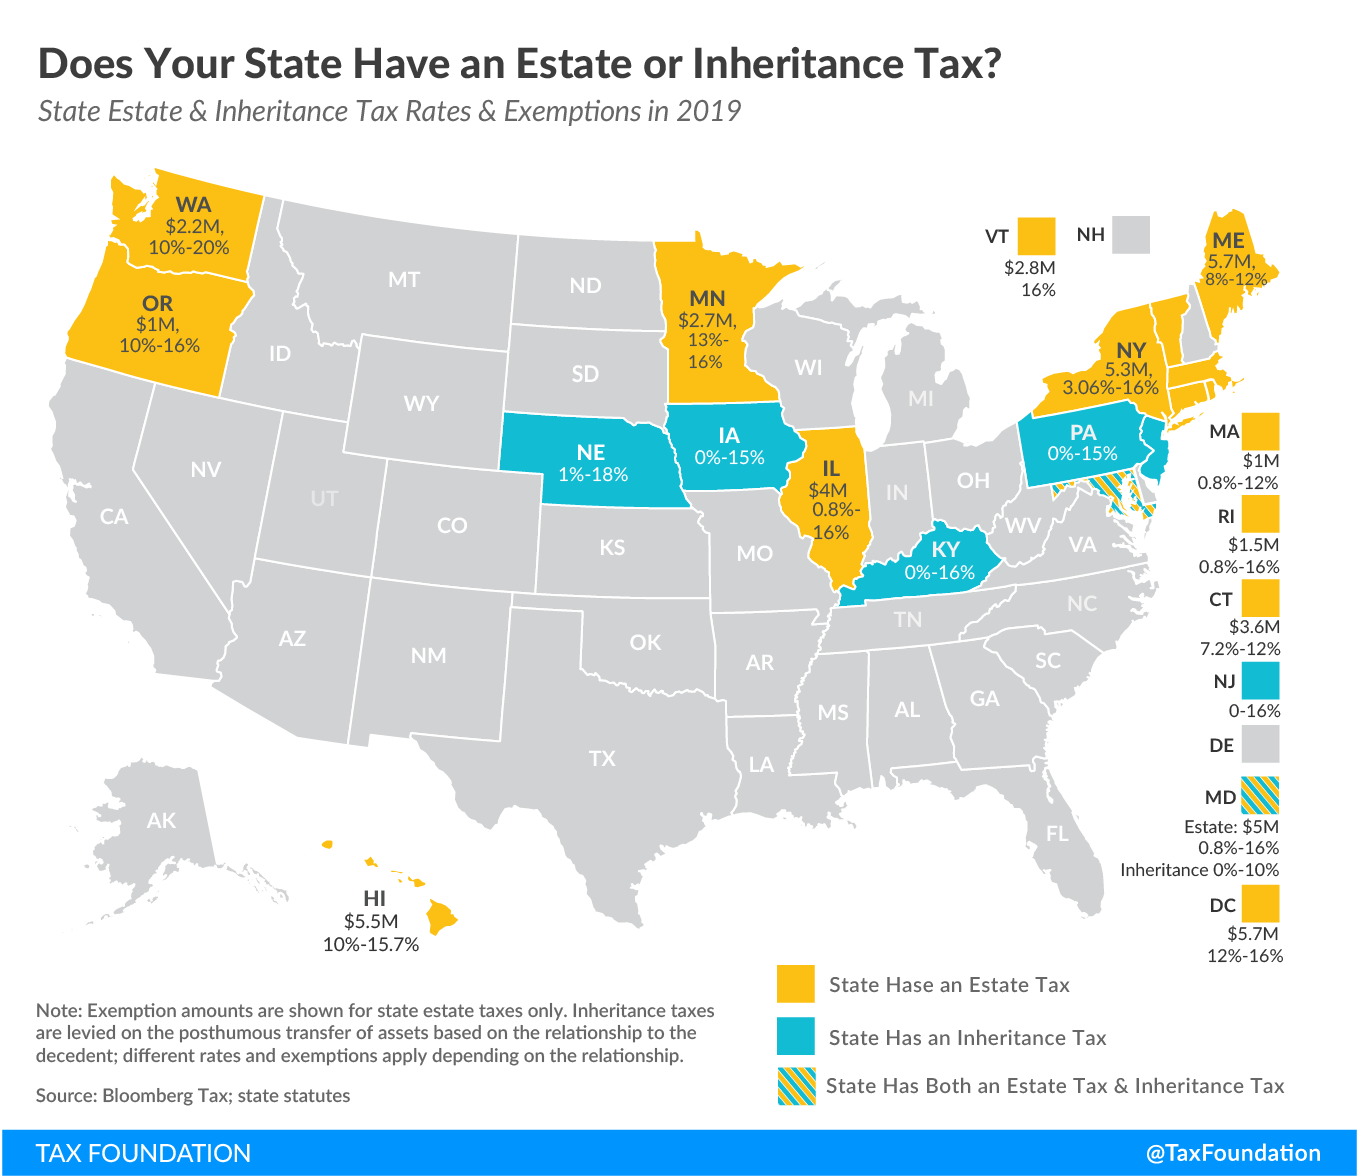 Does Your State Have an Estate or Inheritance Tax? state estate tax 2019, state inheritance tax 2019, does my state have an estate tax? does my state have an inheritance tax? state estate taxes, state inheritance taxes